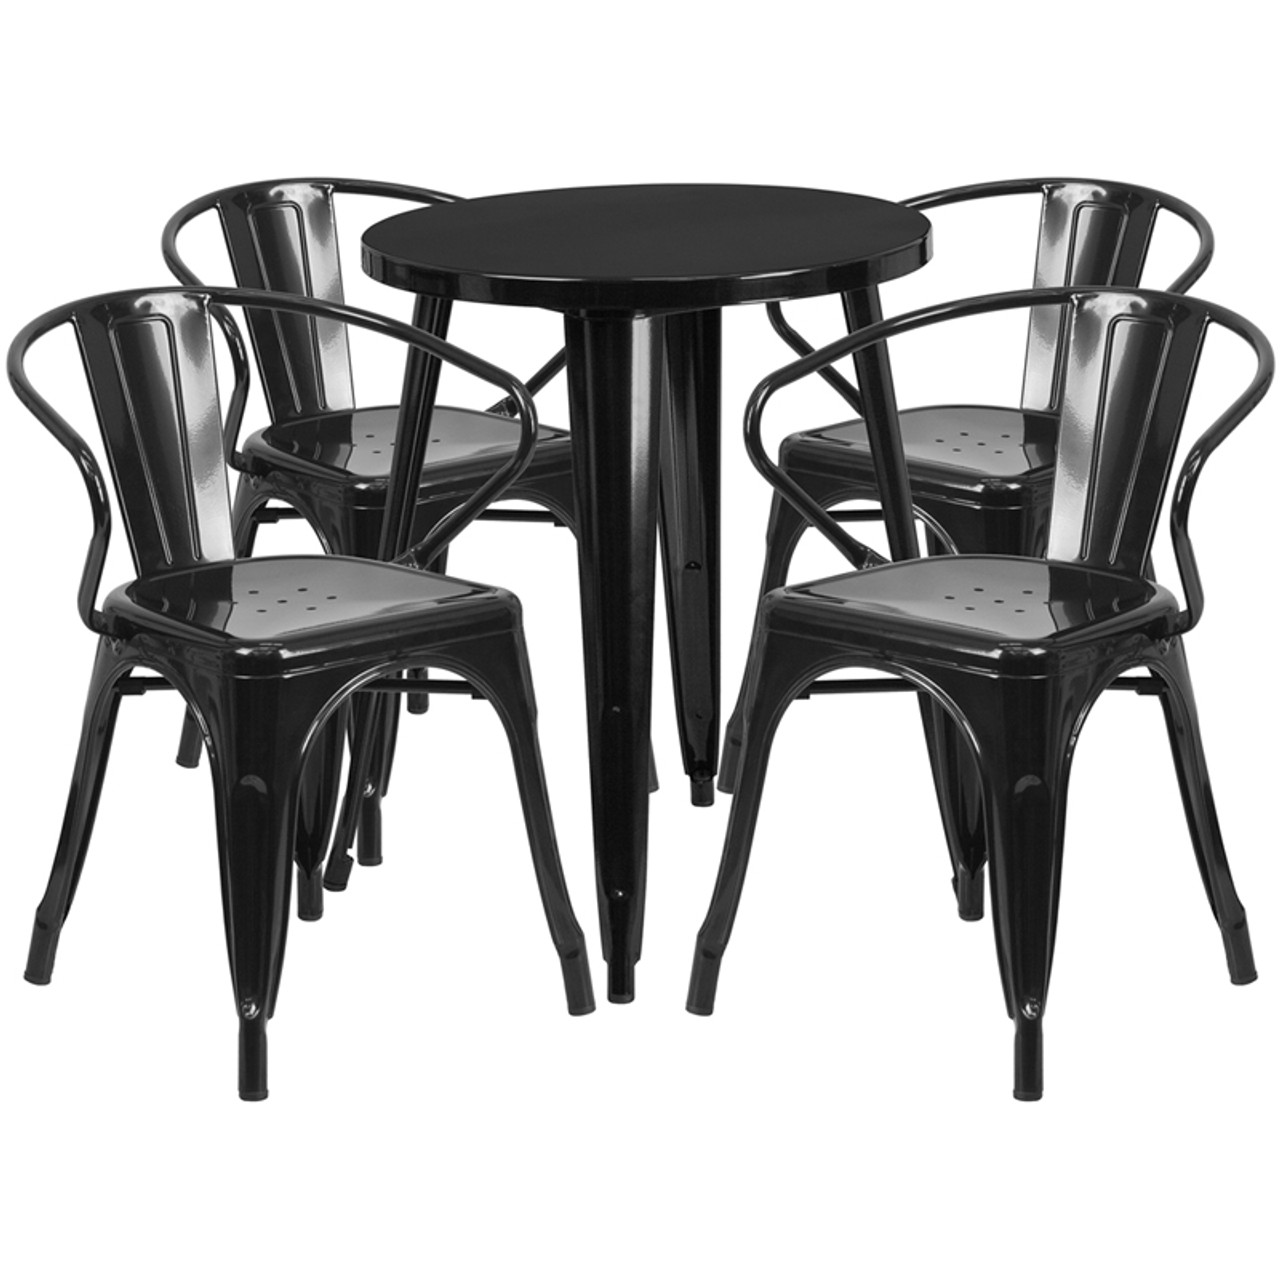 24 Round Black Metal Indoor Outdoor Table Set With 4 Arm Chairs